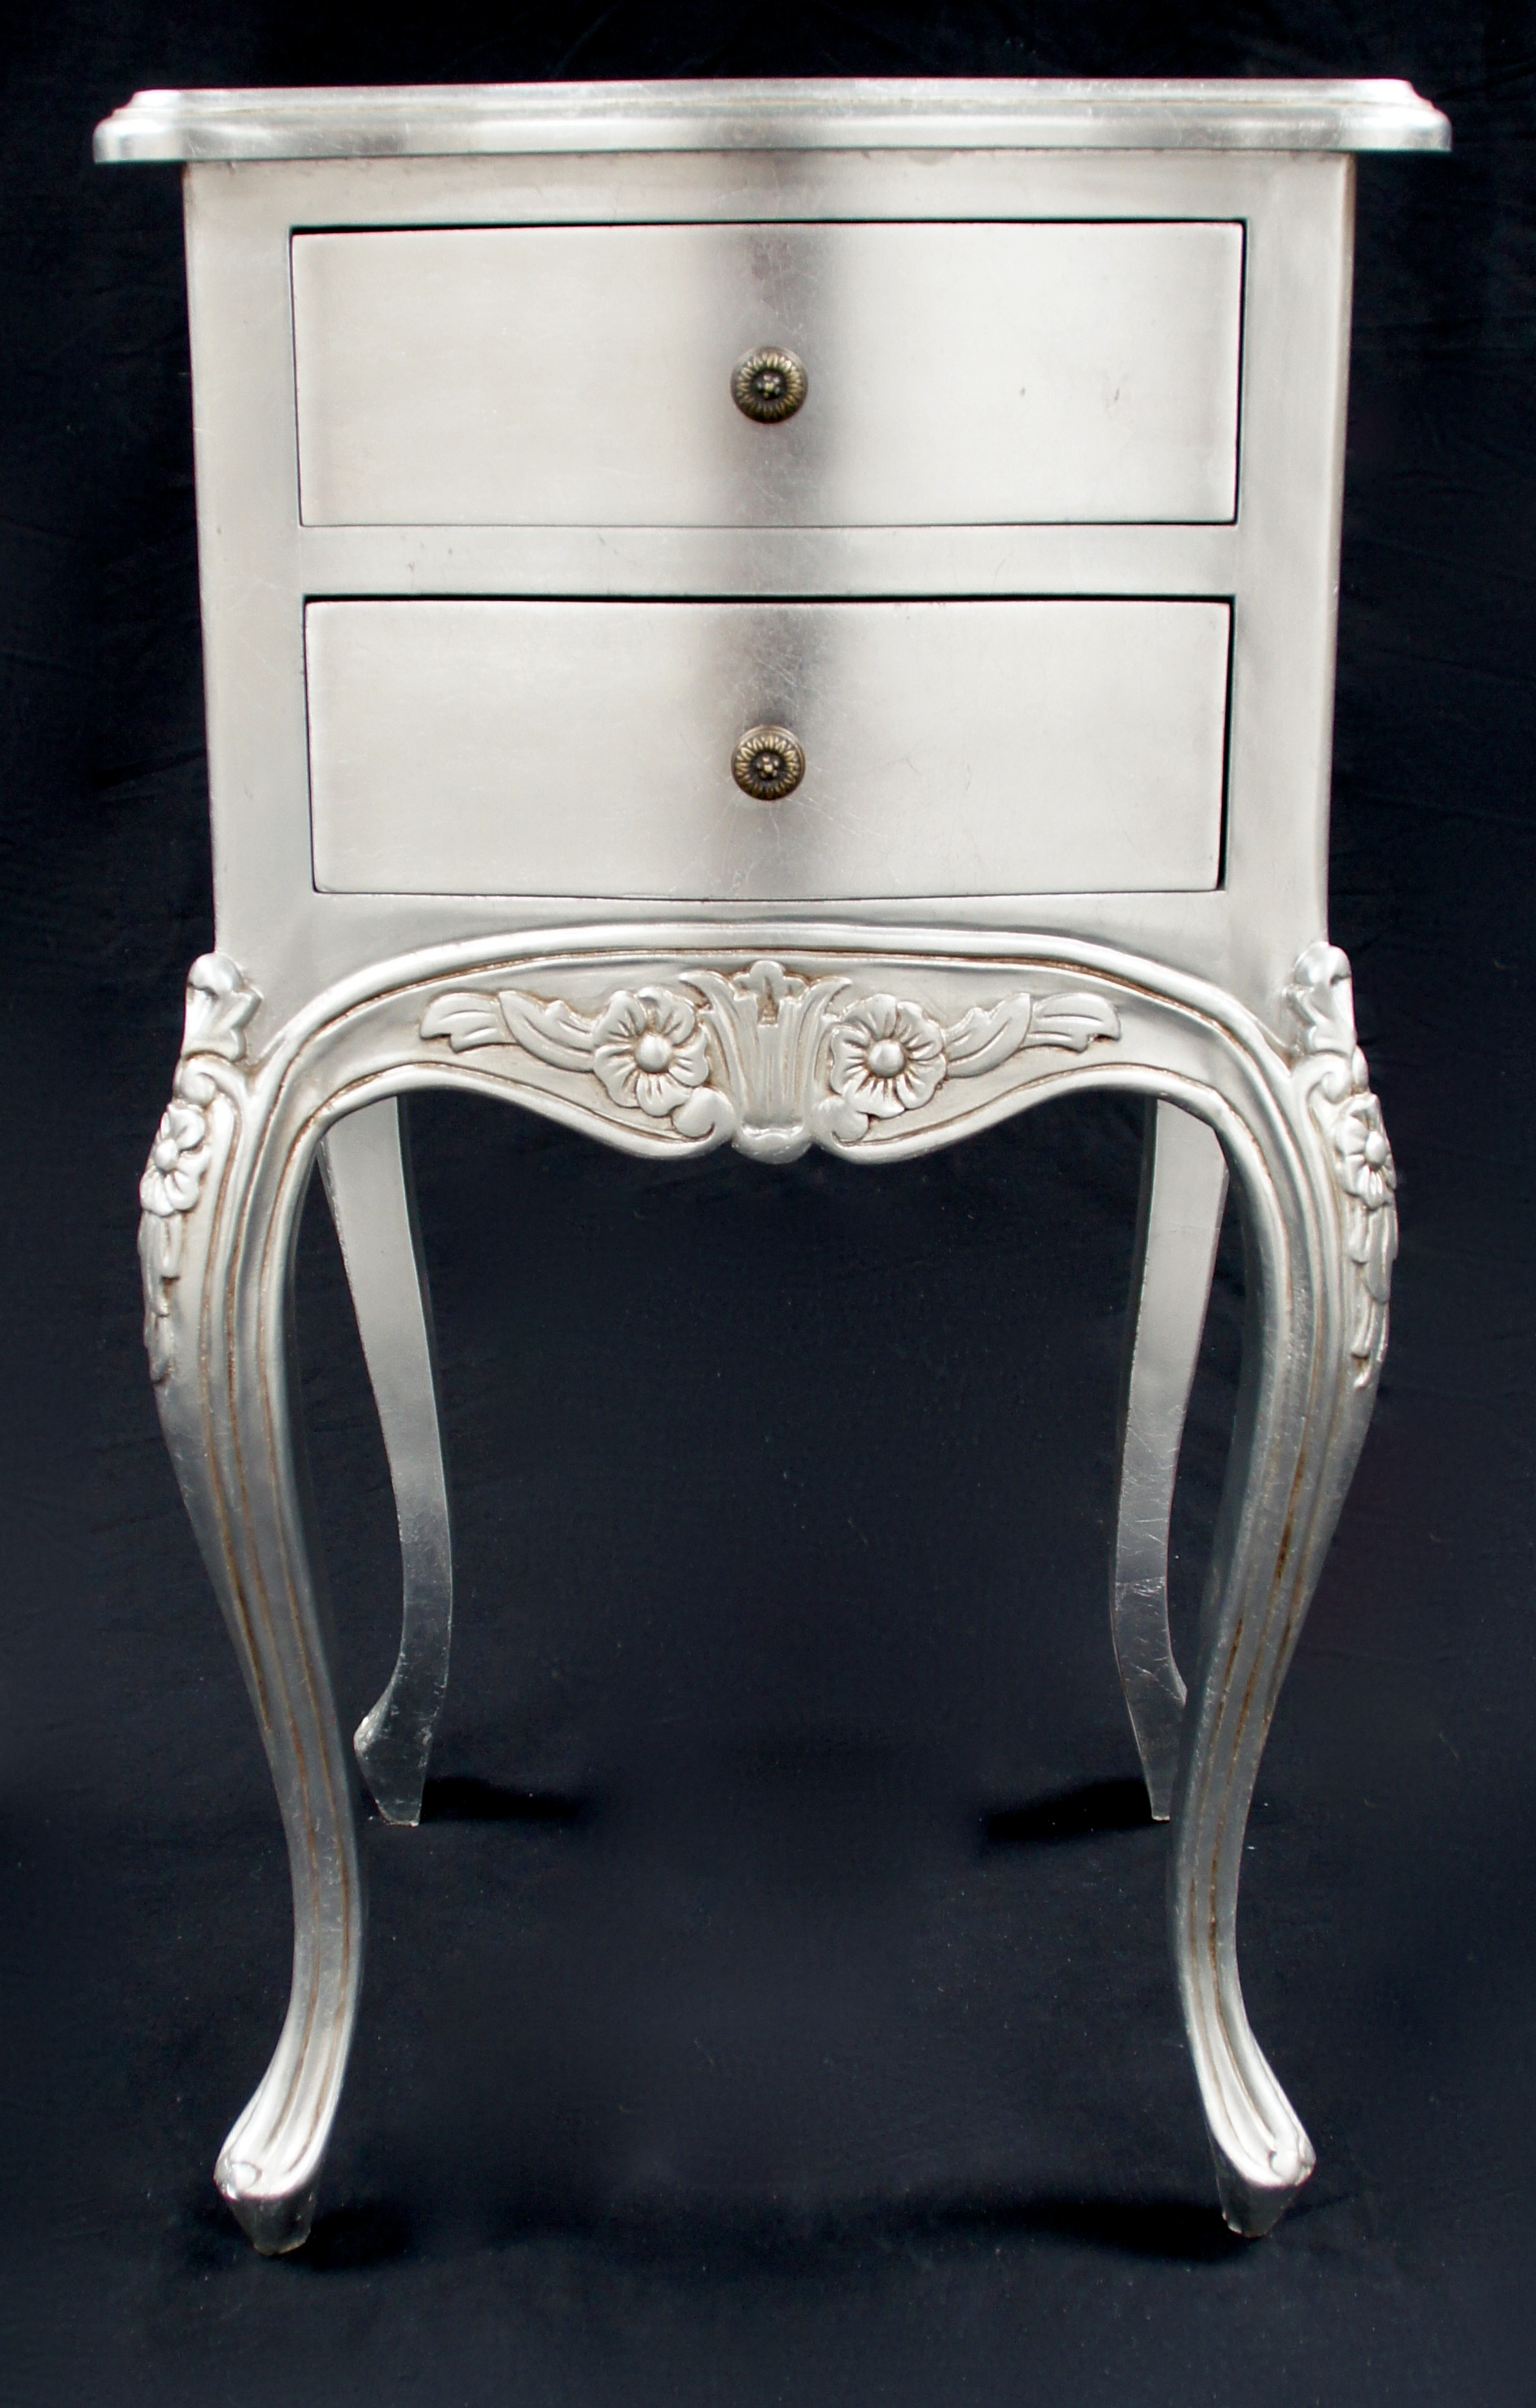 A Beautiful Parisian Ornate Two Drawer Lamp Side Table Or Bedside Cabinet  Shown In SILVER LEAF